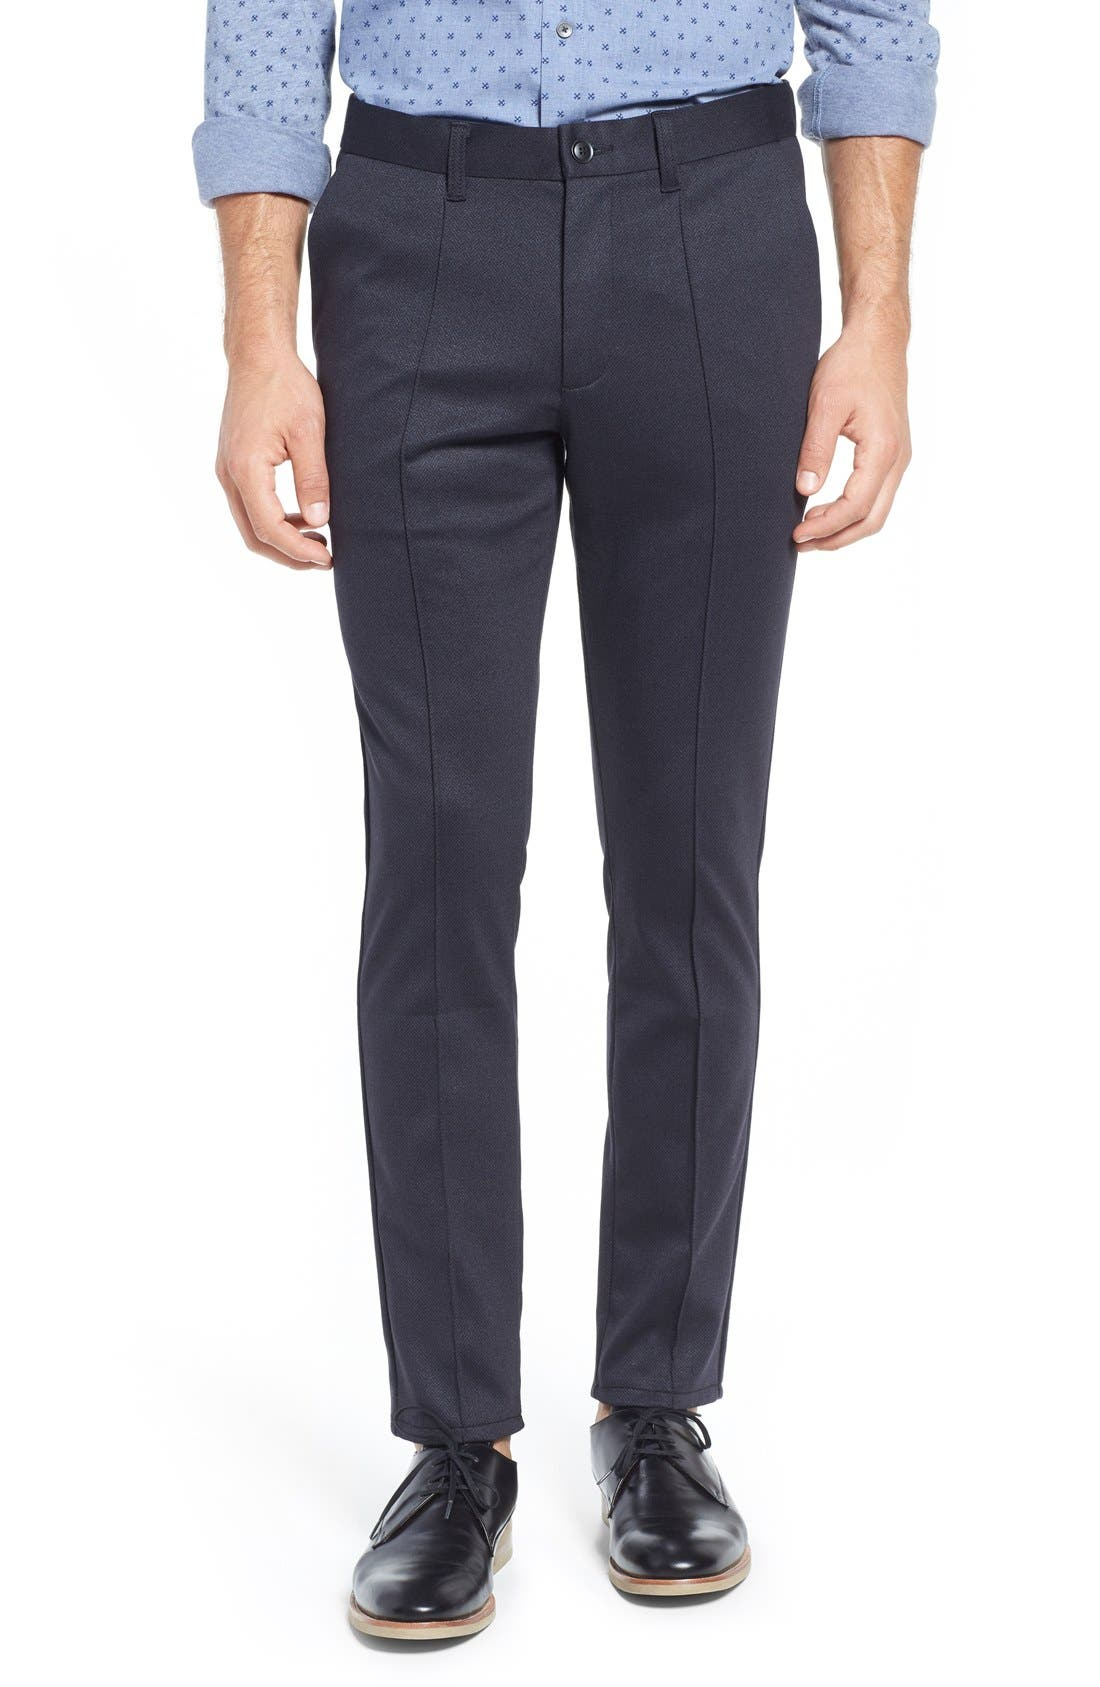 Prospect Herringbone Slim Fit Trousers,                         Main,                         color, Black